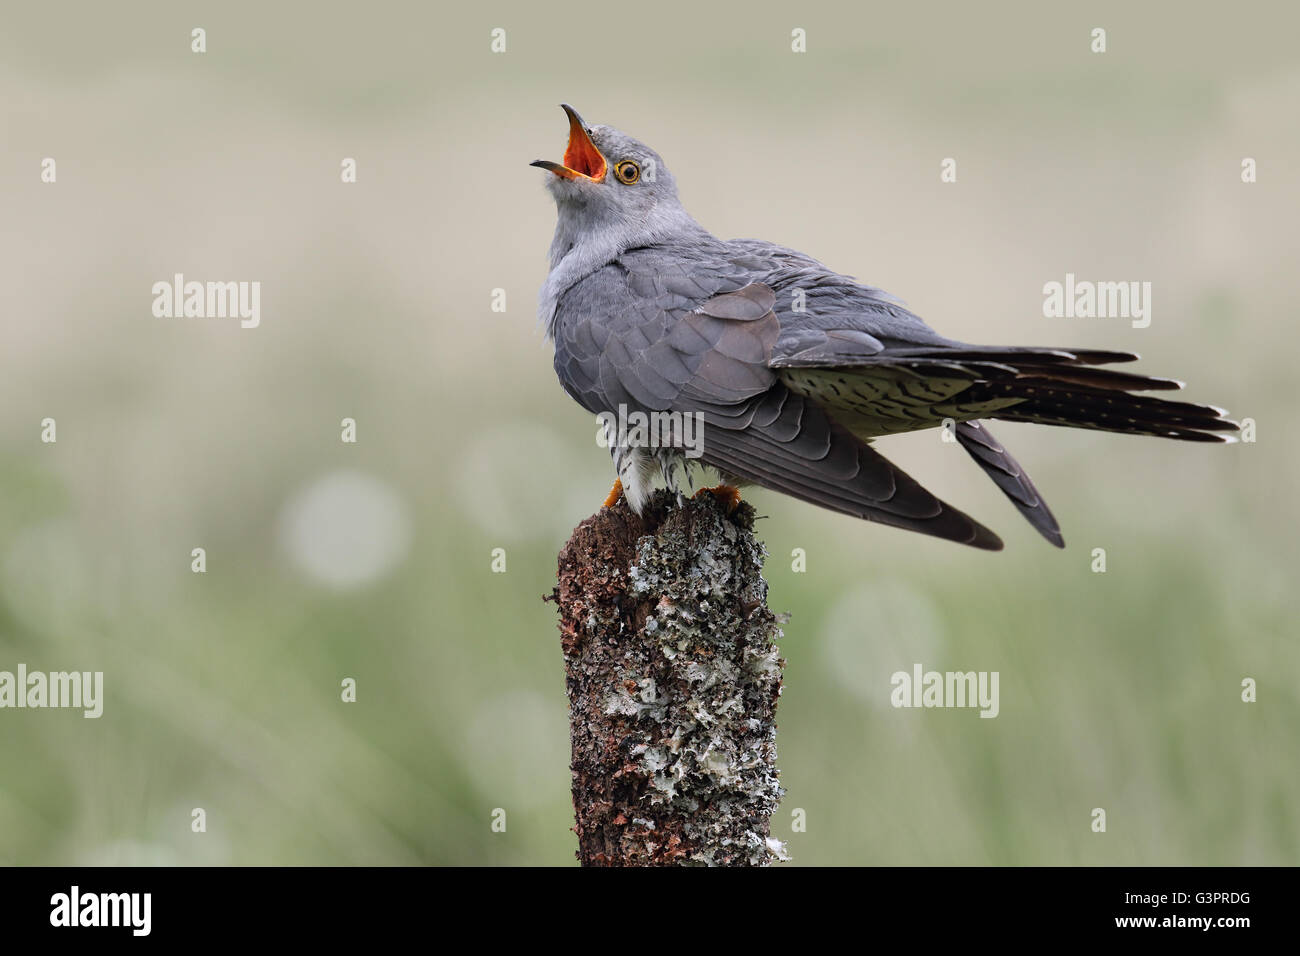 Wild adult Male Cuckoo (Cuculus canorus) calling. Image taken in Scotland, UK. - Stock Image